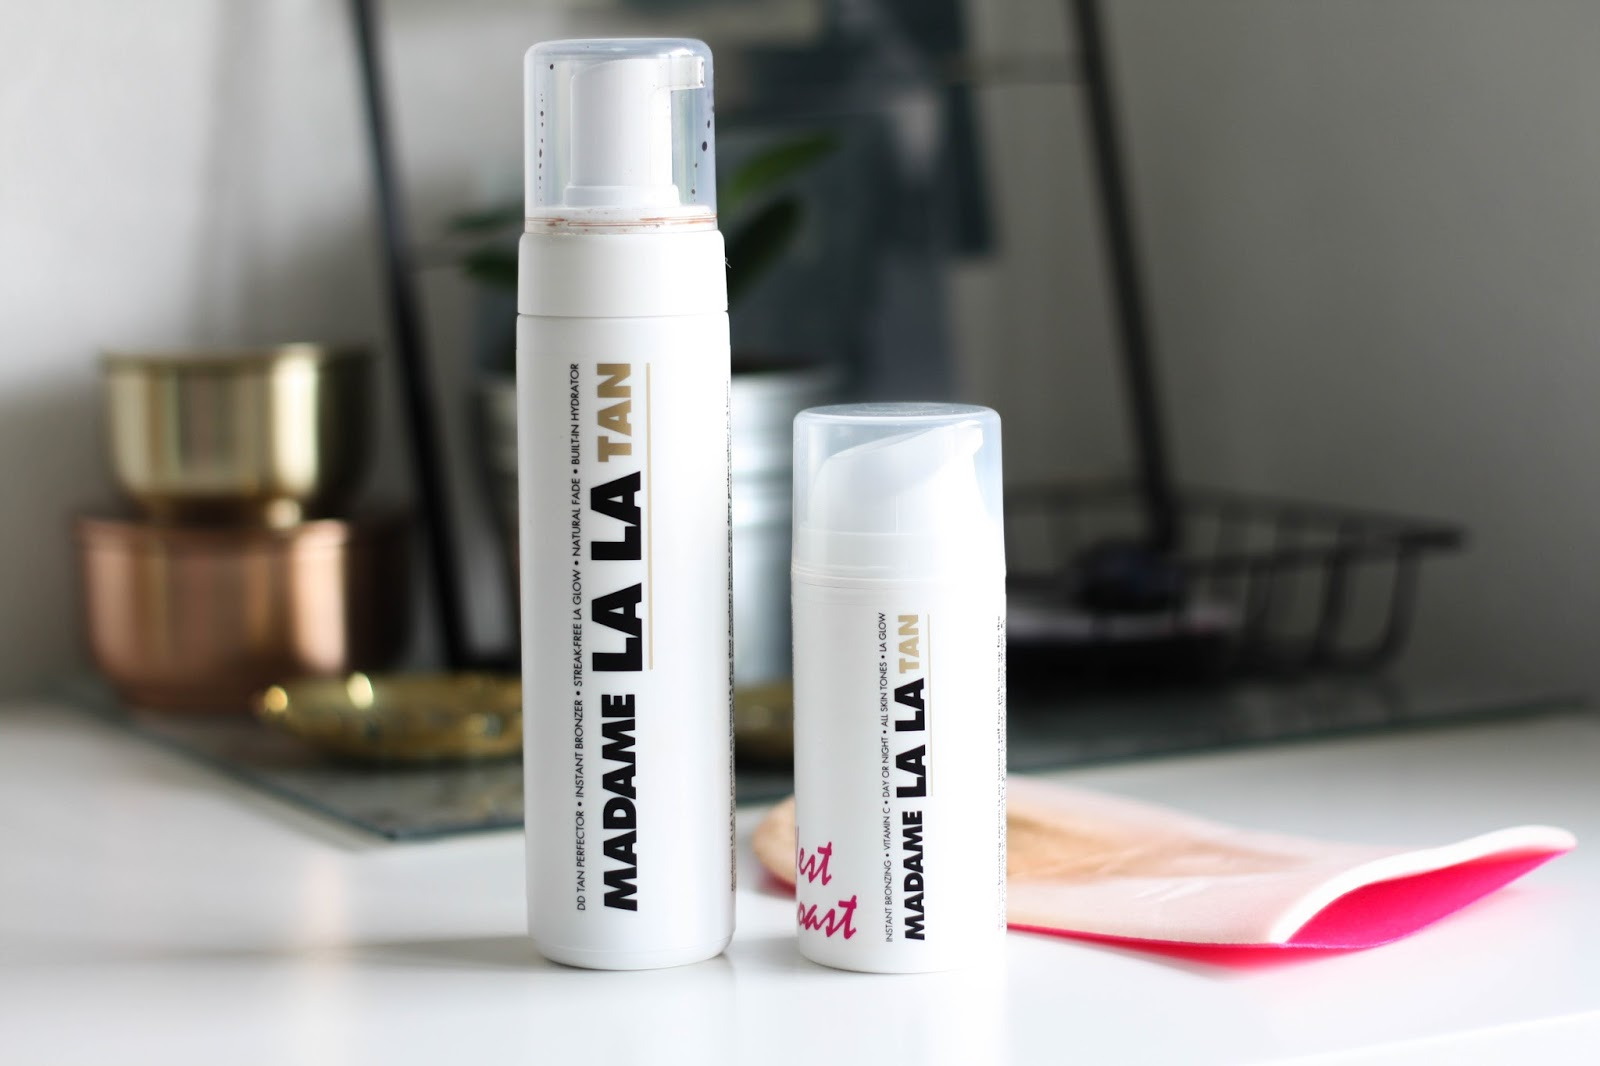 Madame LA LA fake tan review